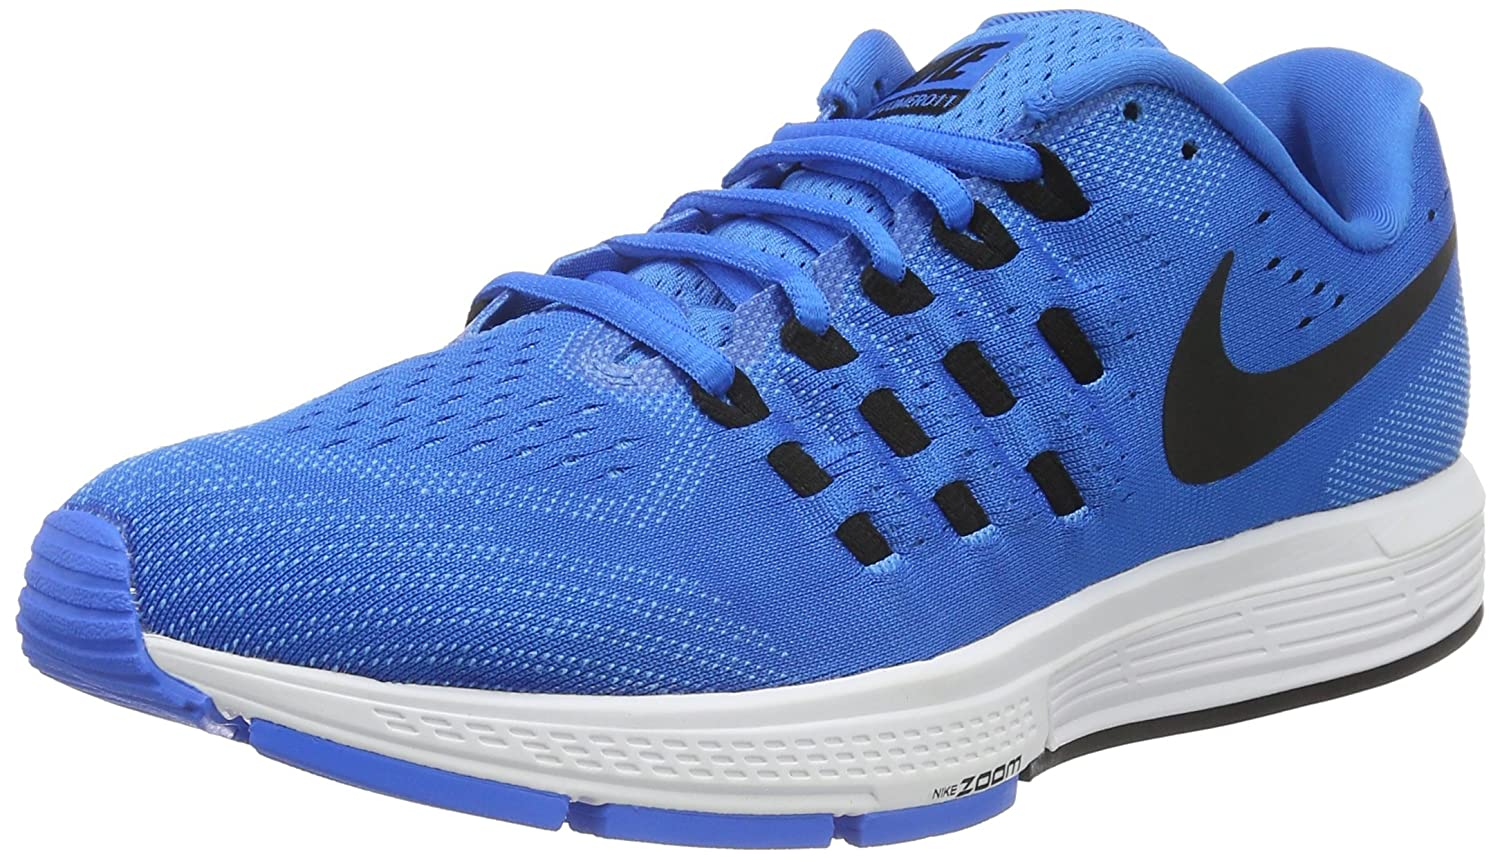 Nike Men's Air Zoom Vomero 11 Running Shoes B000G4A2E4 8.5 D(M) US|Photo Blue/Black-blue Glow-white